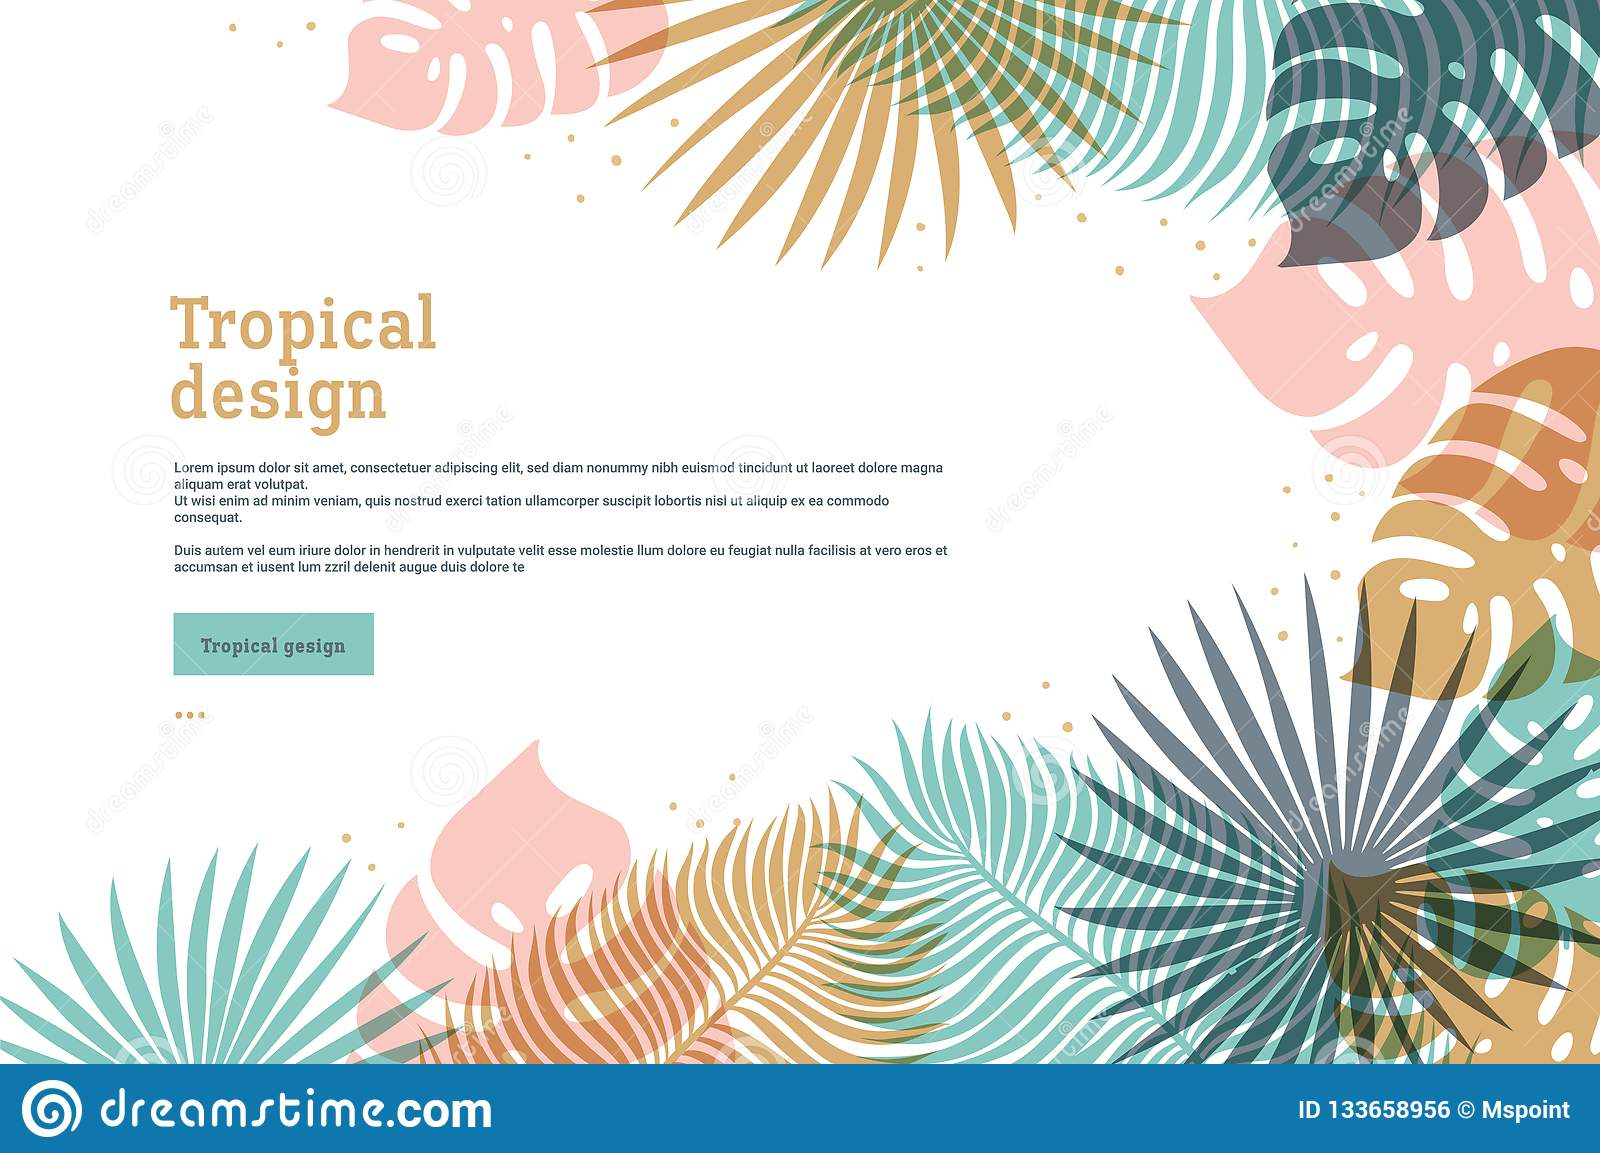 Horizontal Tropical Banner In Pastel Colors Summer Tropical Design With Exotic Palm Leaves Monstera Palm Leaves Stock Vector Illustration Of Garden Color 133658956 Sign in with facebook sign in with twitter. https www dreamstime com horizontal tropical banner pastel colors summer tropical design exotic palm leaves monstera palm leaves horizontal image133658956